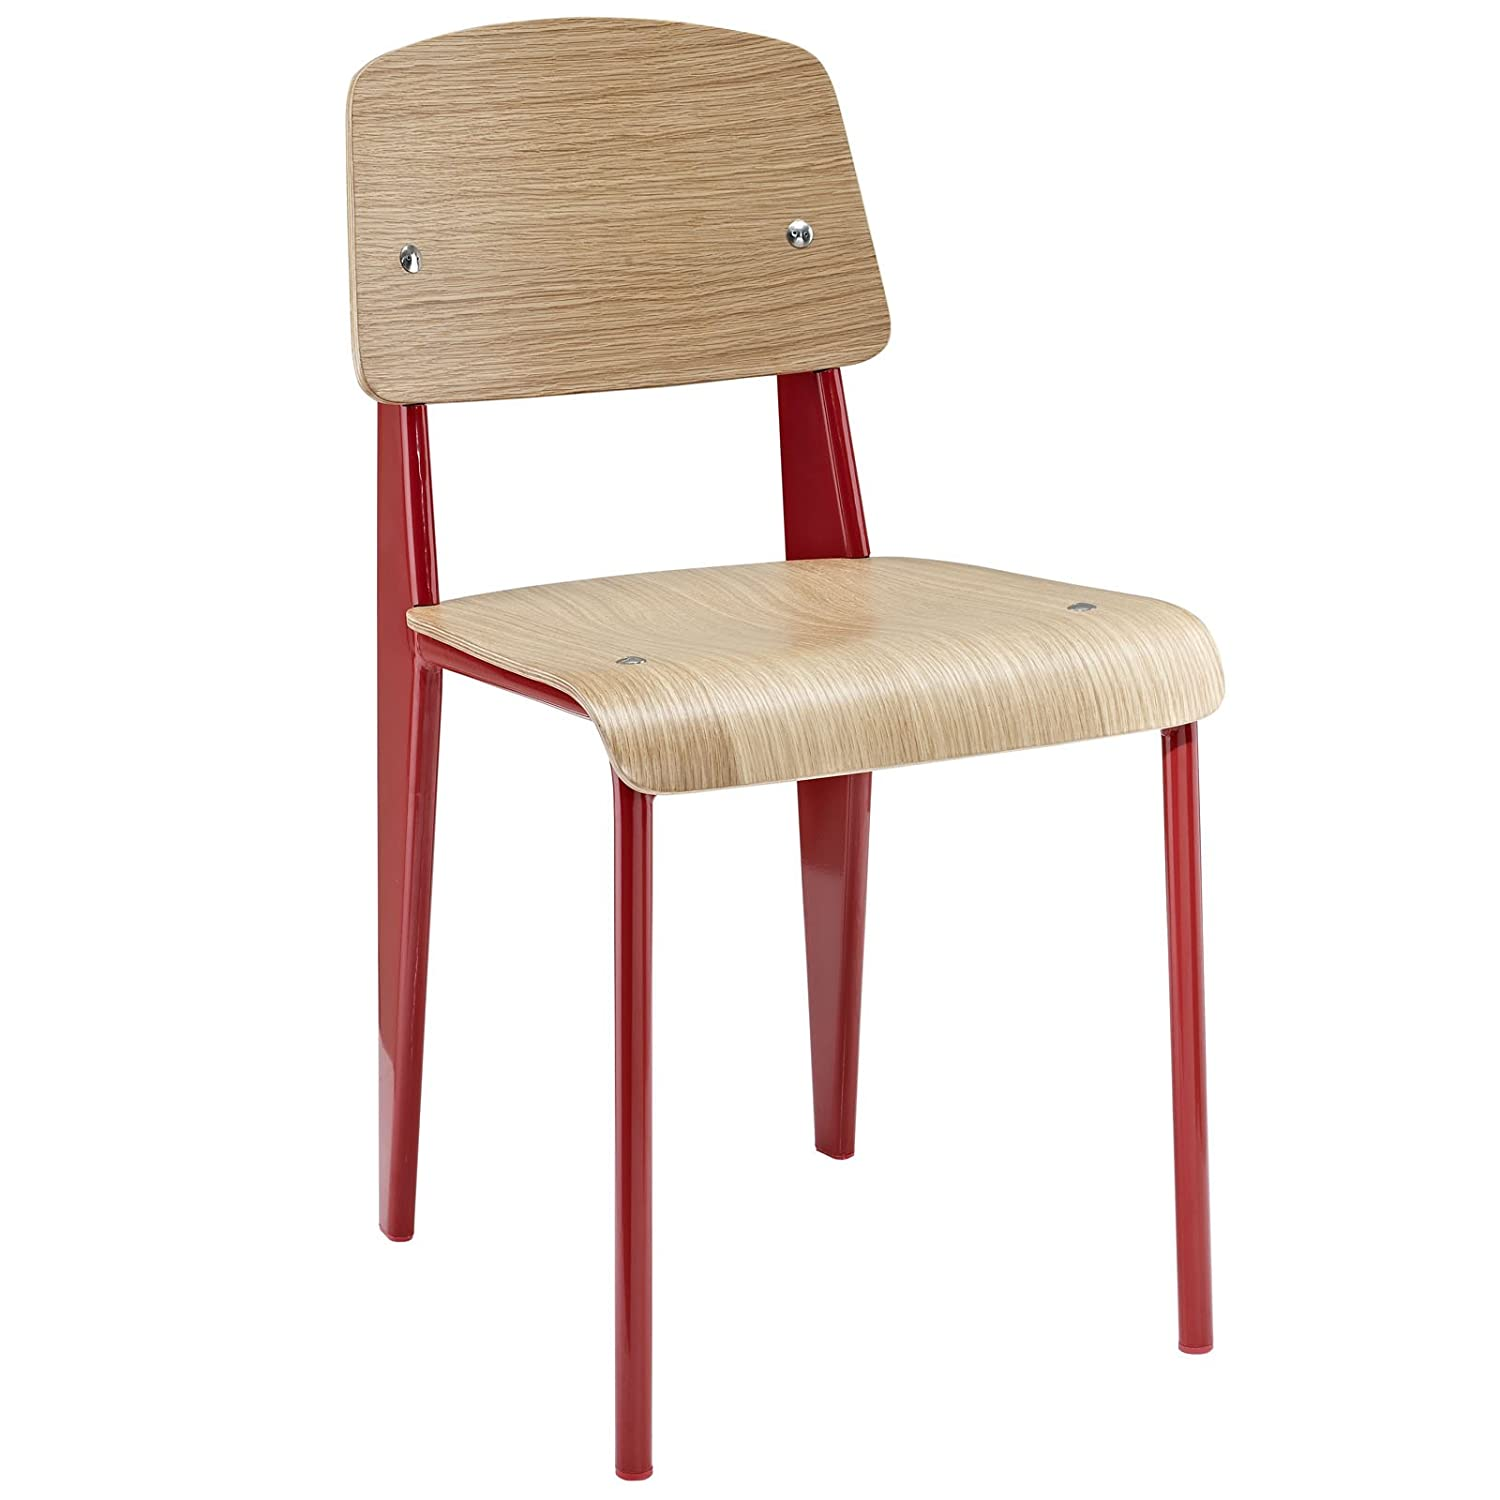 Amazon.com: Modway Jean Prouve Style Standard Chair, Natural Red: Kitchen U0026  Dining